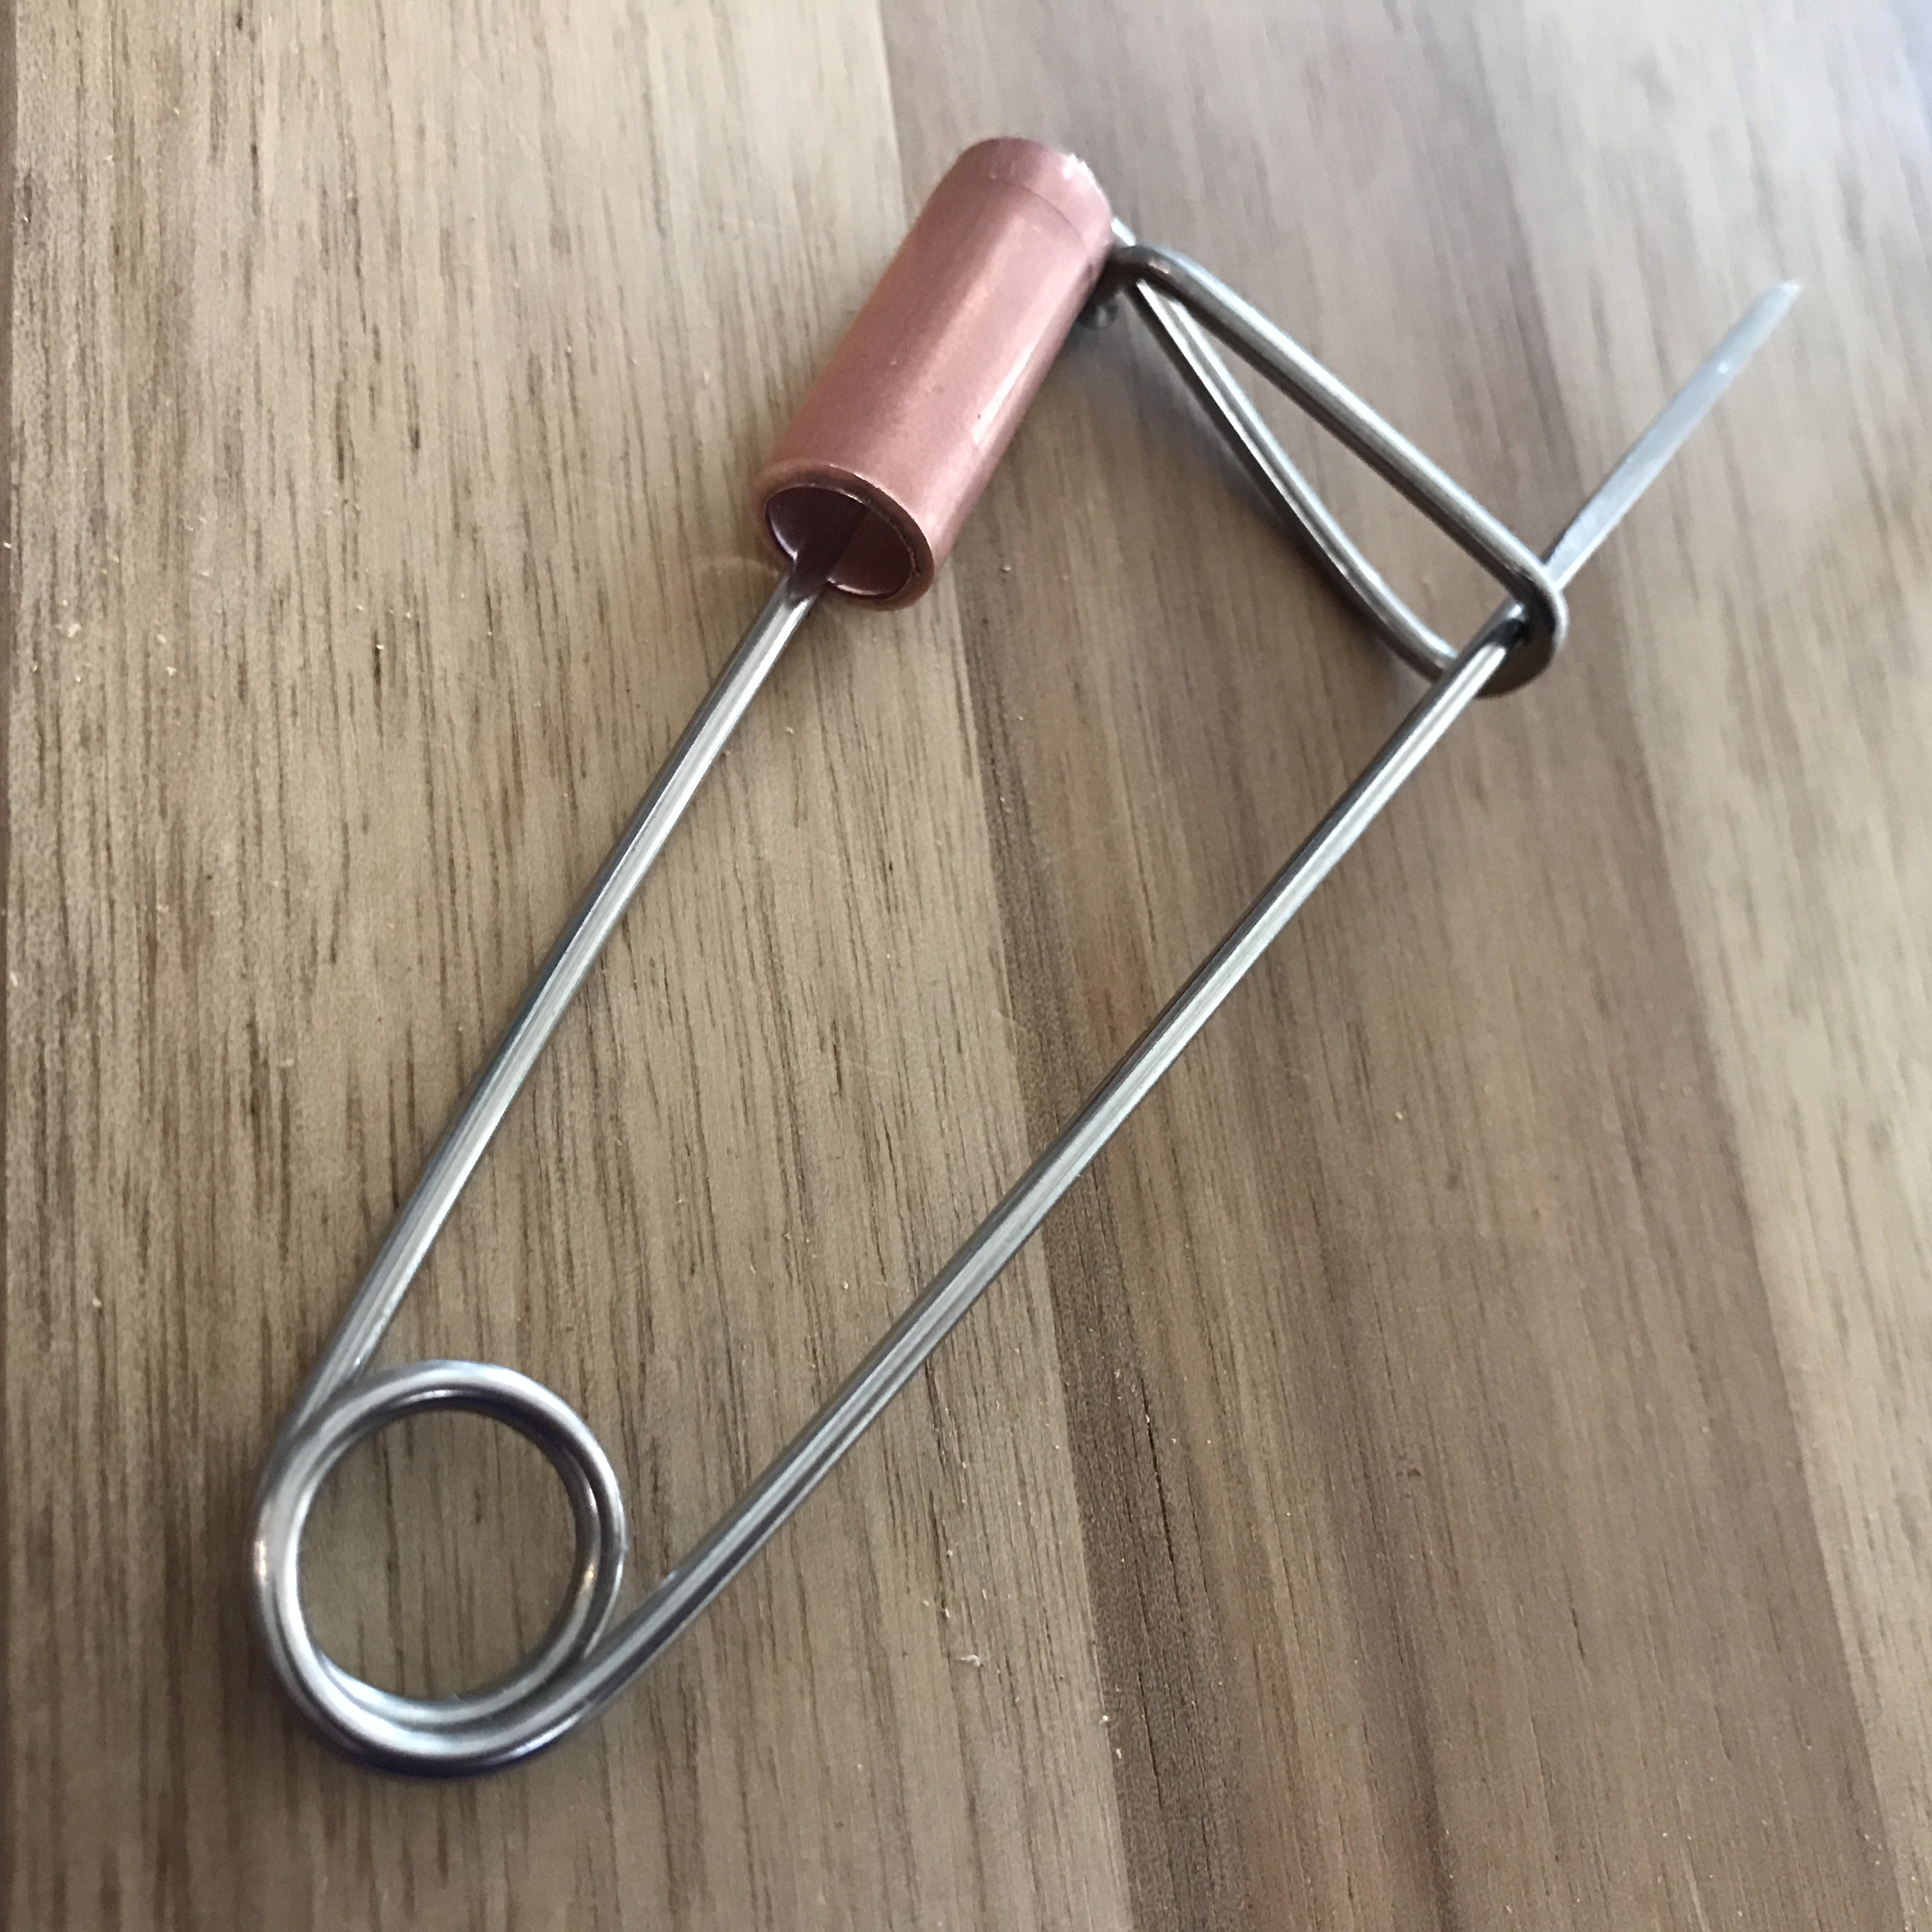 How to Pick a Lock Using a Paperclip